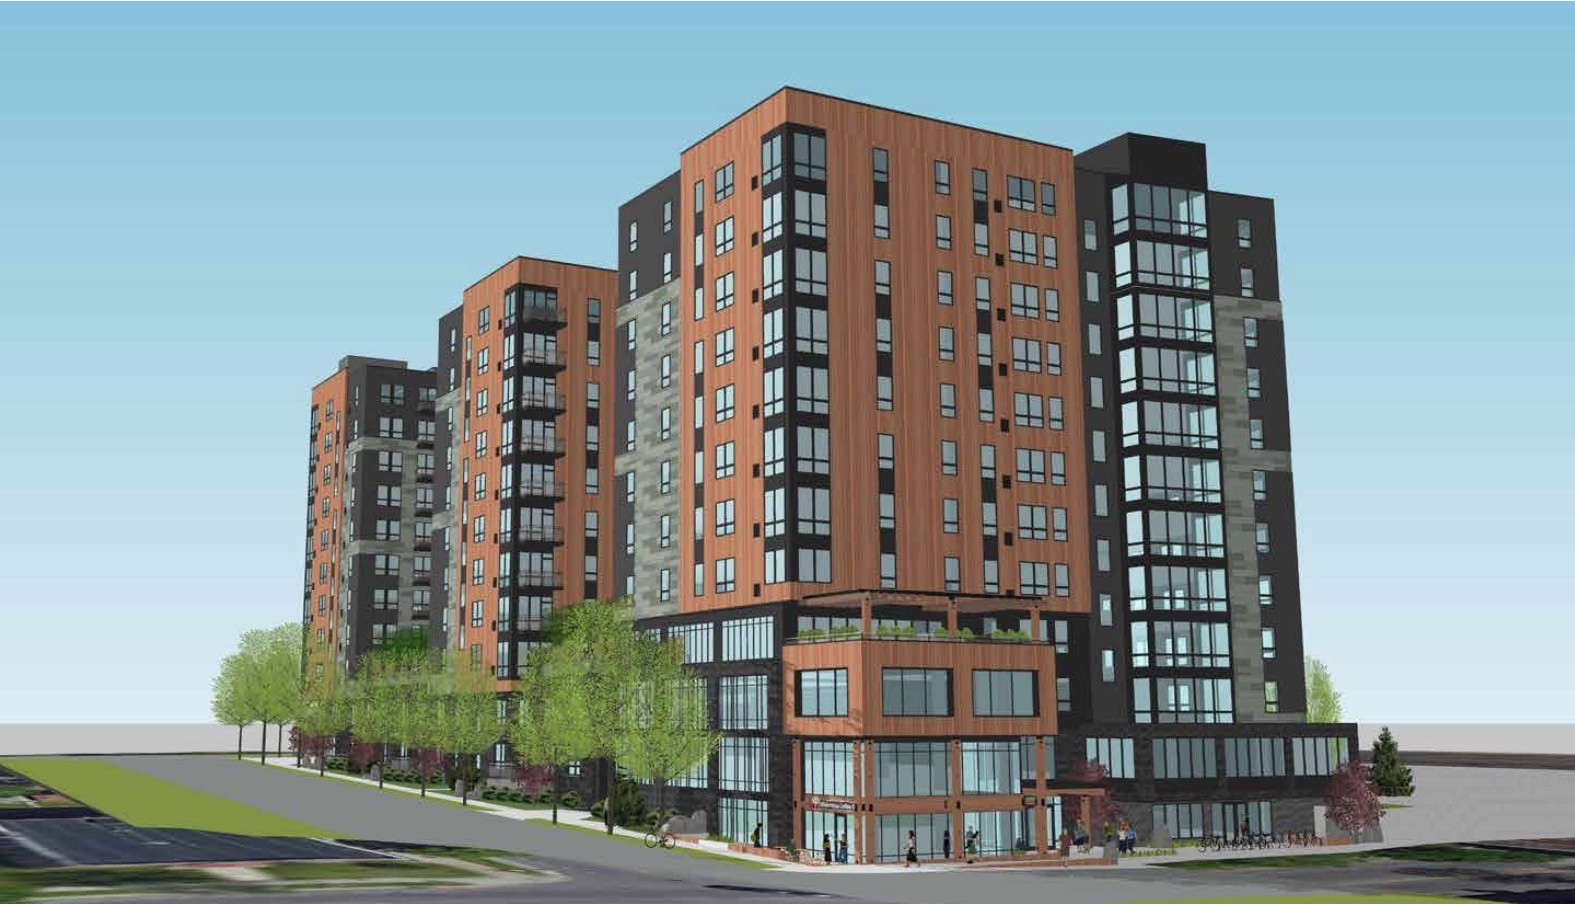 Concept rendering for a 12-story development on 15th Avenue.